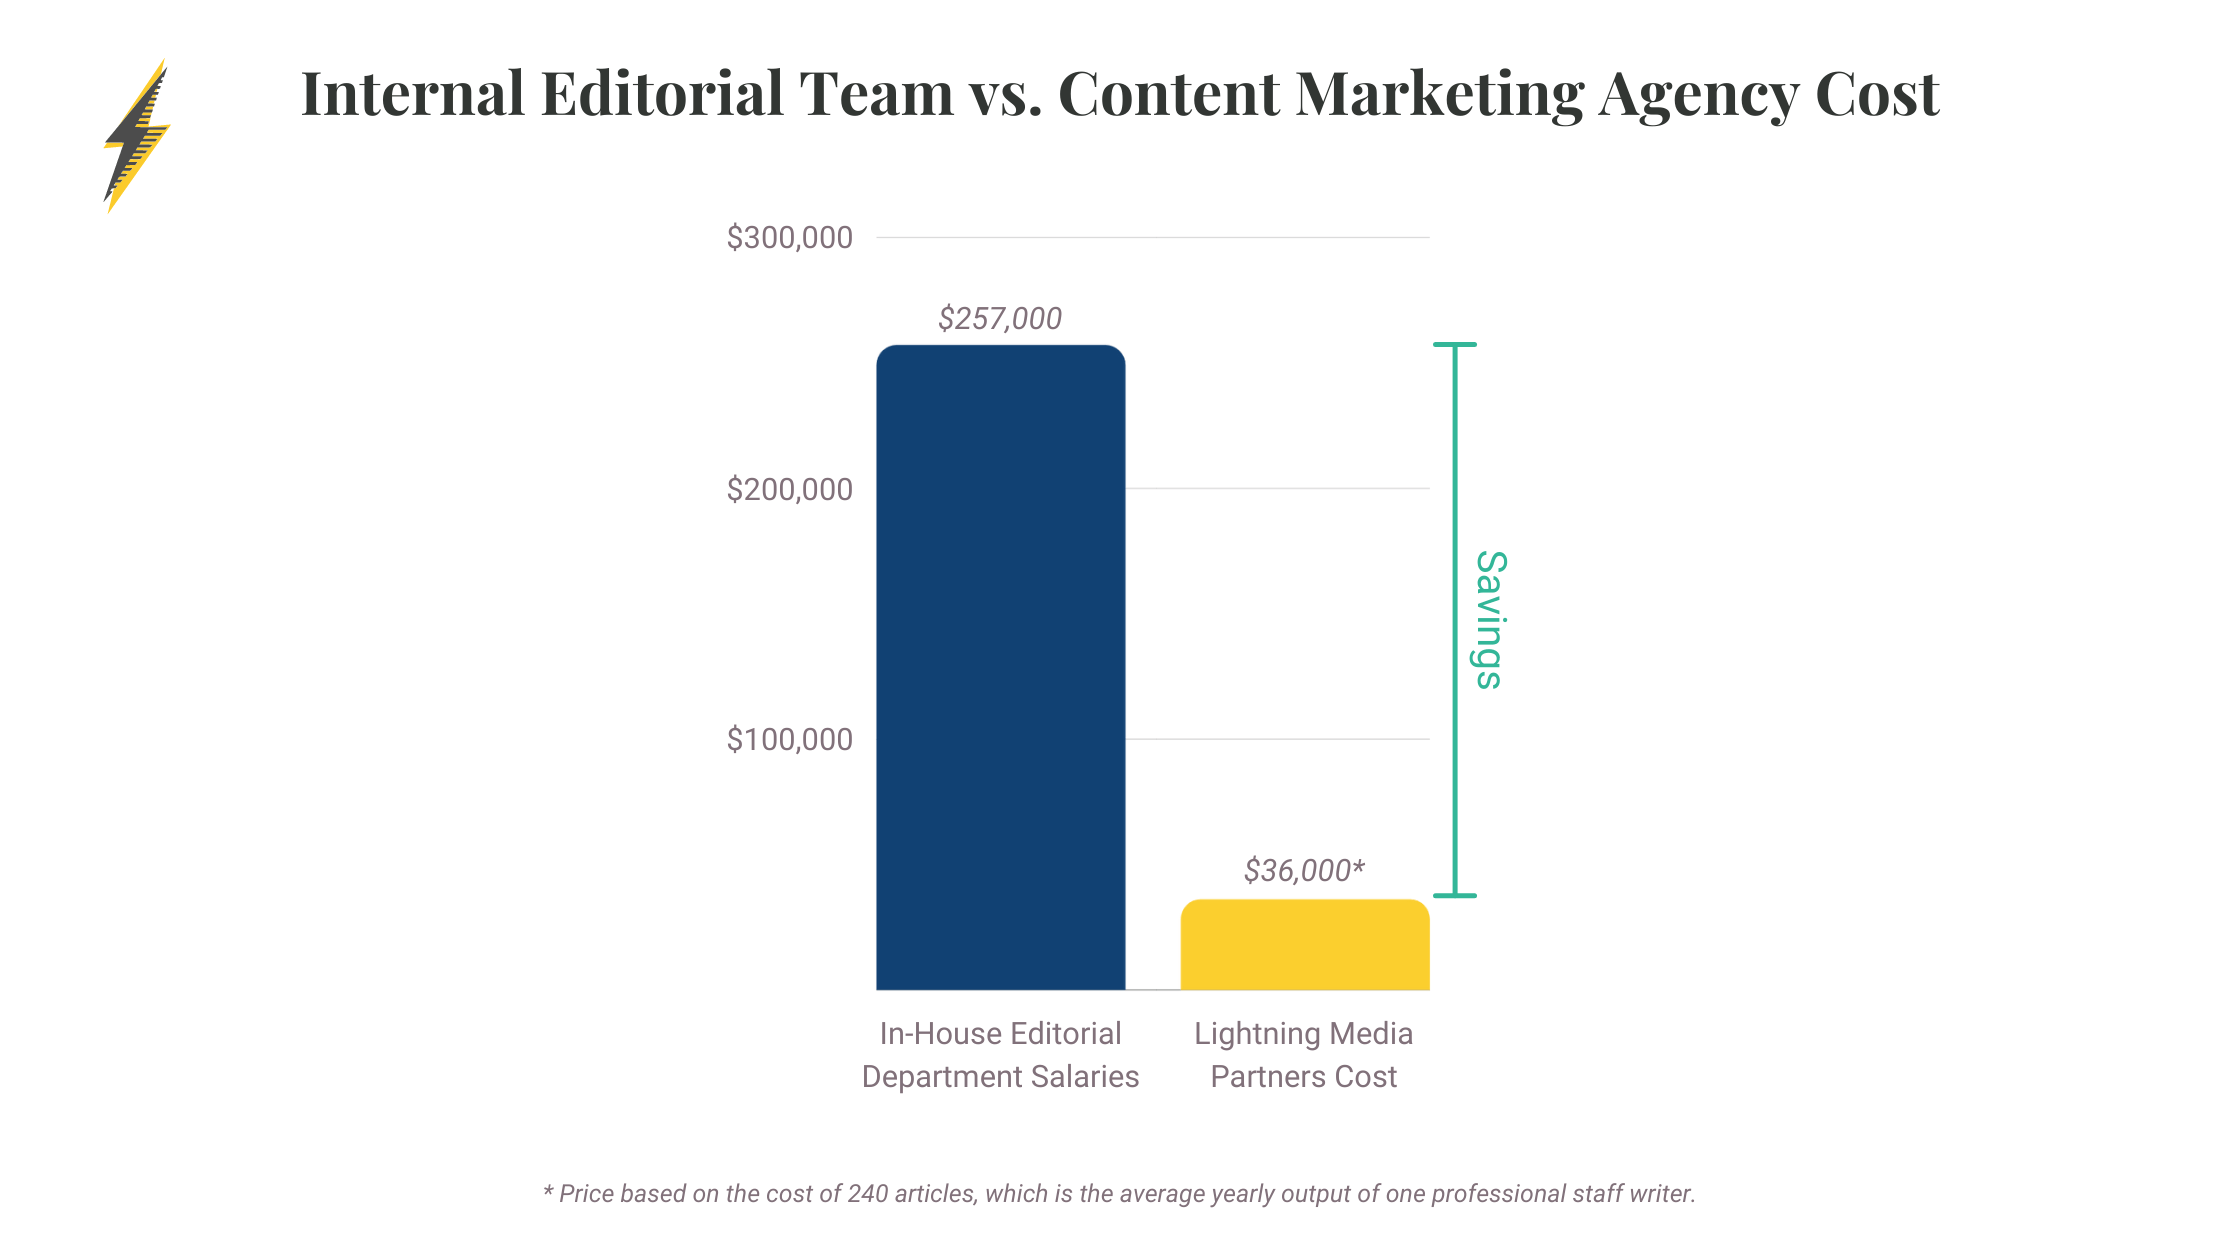 graph illustrating the cost differences between an internal editorial department and a content marketing agency